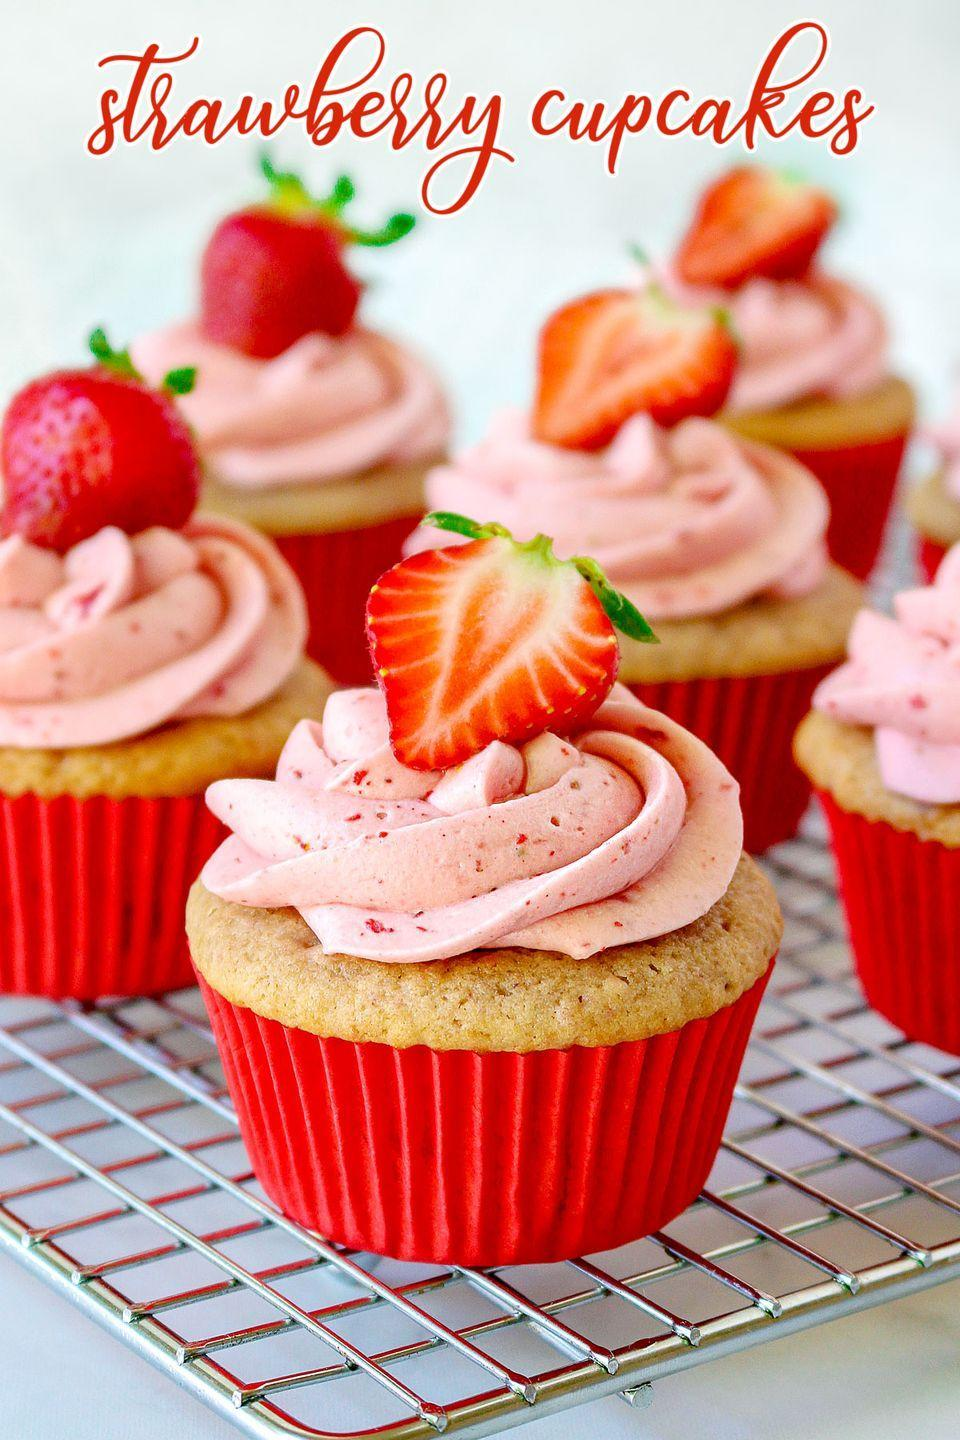 """<p>Juicy fresh strawberries scream summer! These cupcakes have both a homemade strawberry cake <em>and</em> a strawberry cream cheese frosting for extra berry flavor.<strong><br><br>Get the recipe at <a href=""""https://www.glorioustreats.com/strawberry-cupcakes/"""" rel=""""nofollow noopener"""" target=""""_blank"""" data-ylk=""""slk:Glorious Treats"""" class=""""link rapid-noclick-resp"""">Glorious Treats</a>.</strong></p><p><a class=""""link rapid-noclick-resp"""" href=""""https://go.redirectingat.com?id=74968X1596630&url=https%3A%2F%2Fwww.walmart.com%2Fsearch%2F%3Fquery%3DCOOLING%2BRACKS&sref=https%3A%2F%2Fwww.thepioneerwoman.com%2Ffood-cooking%2Frecipes%2Fg36343624%2F4th-of-july-cupcakes%2F"""" rel=""""nofollow noopener"""" target=""""_blank"""" data-ylk=""""slk:SHOP COOLING RACKS"""">SHOP COOLING RACKS</a></p>"""